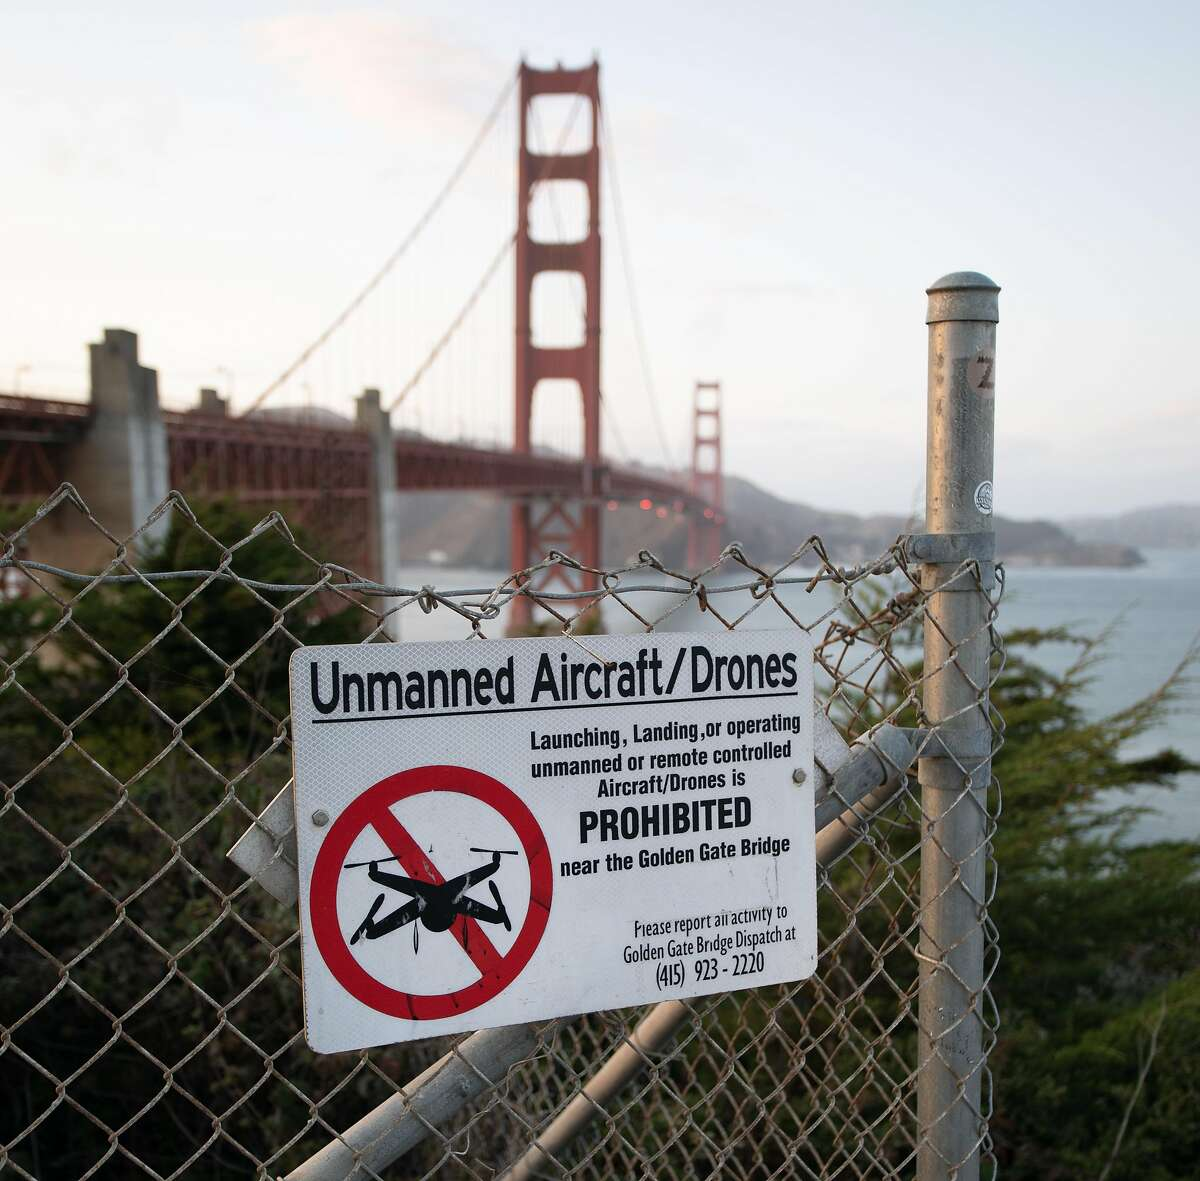 Signs around the Golden Gate Bridge notify visitors that operating drones there is illegal, but that hasn't stopped some people.